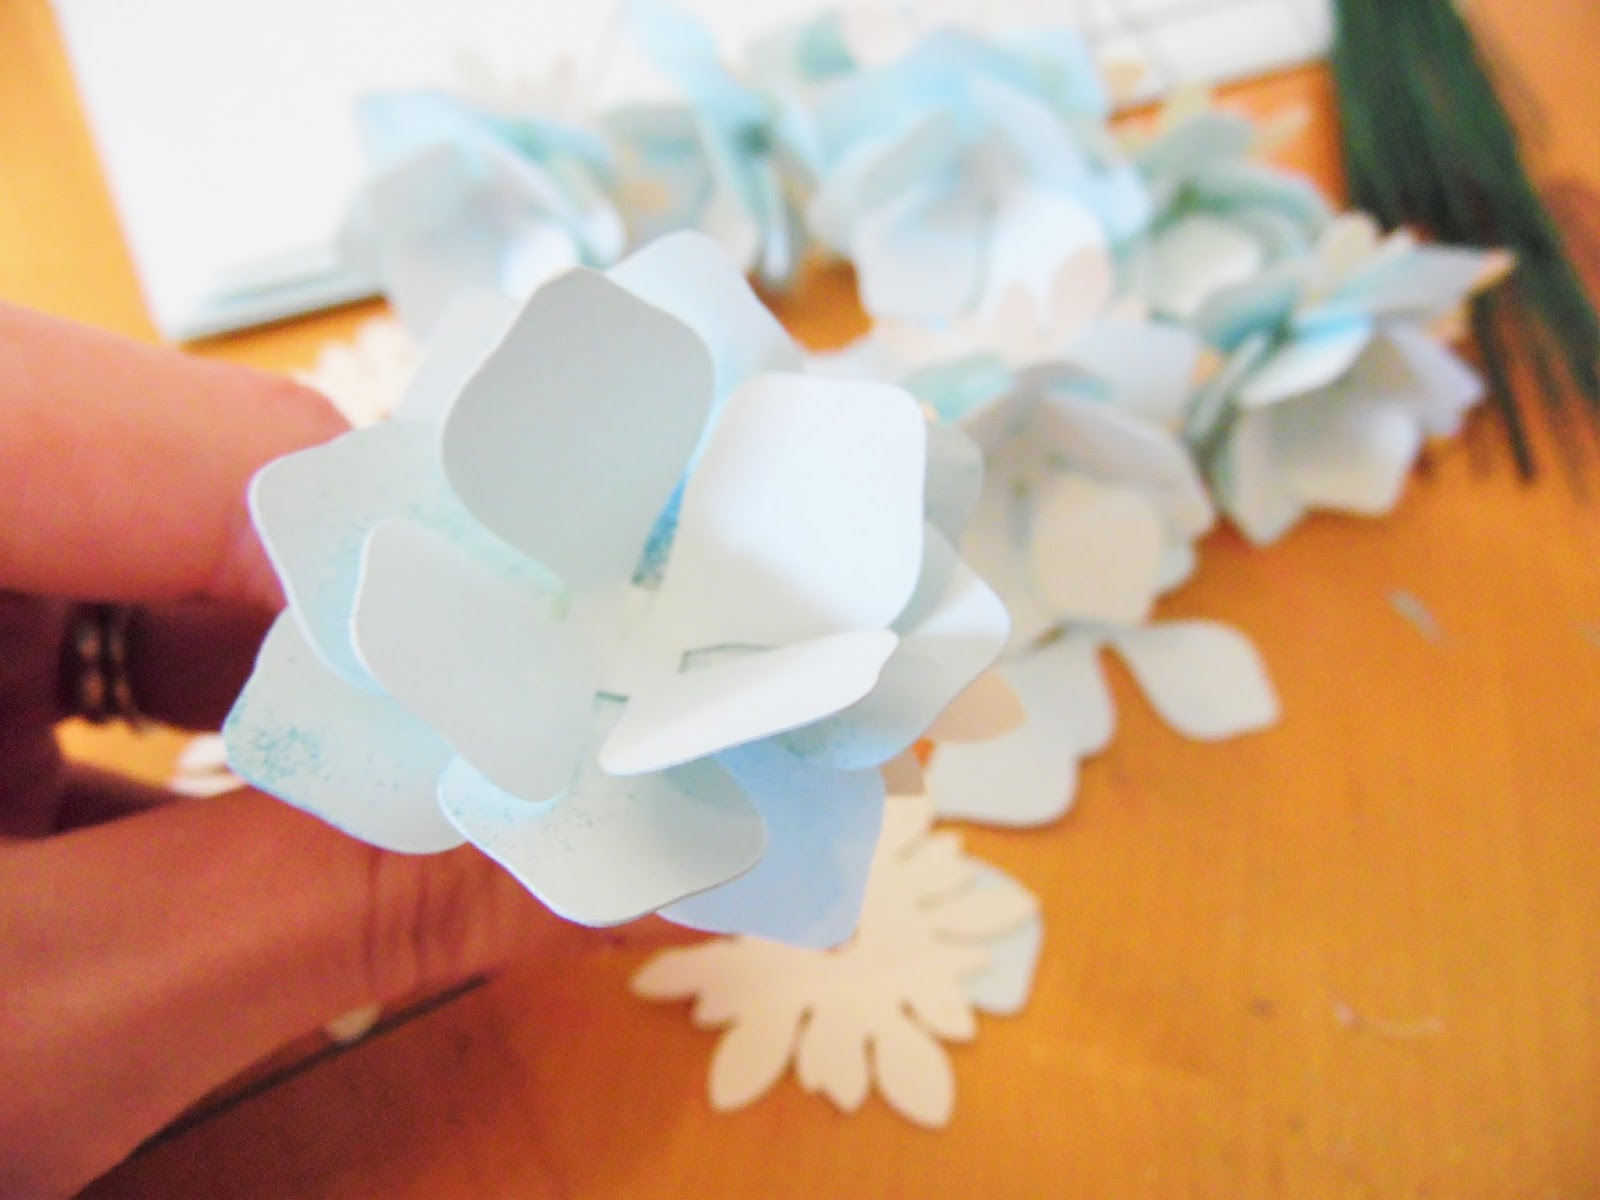 Paper flower hydrangeas flower templates printable patterns you will build 3 layers for 1 bud alternating petals mightylinksfo